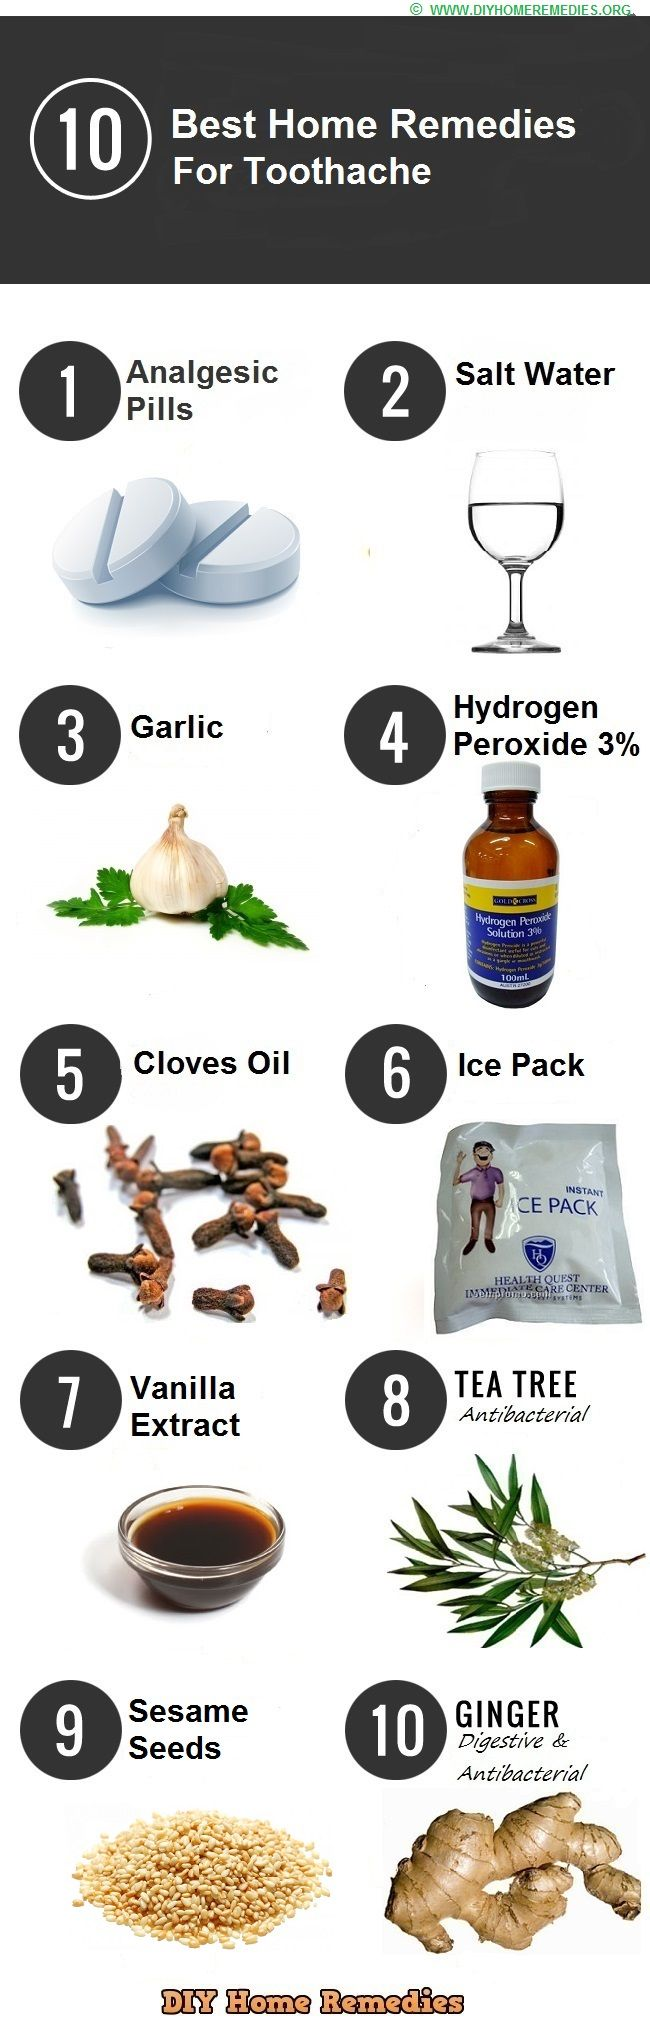 10 best home remedies for toothache | home remedies | pinterest